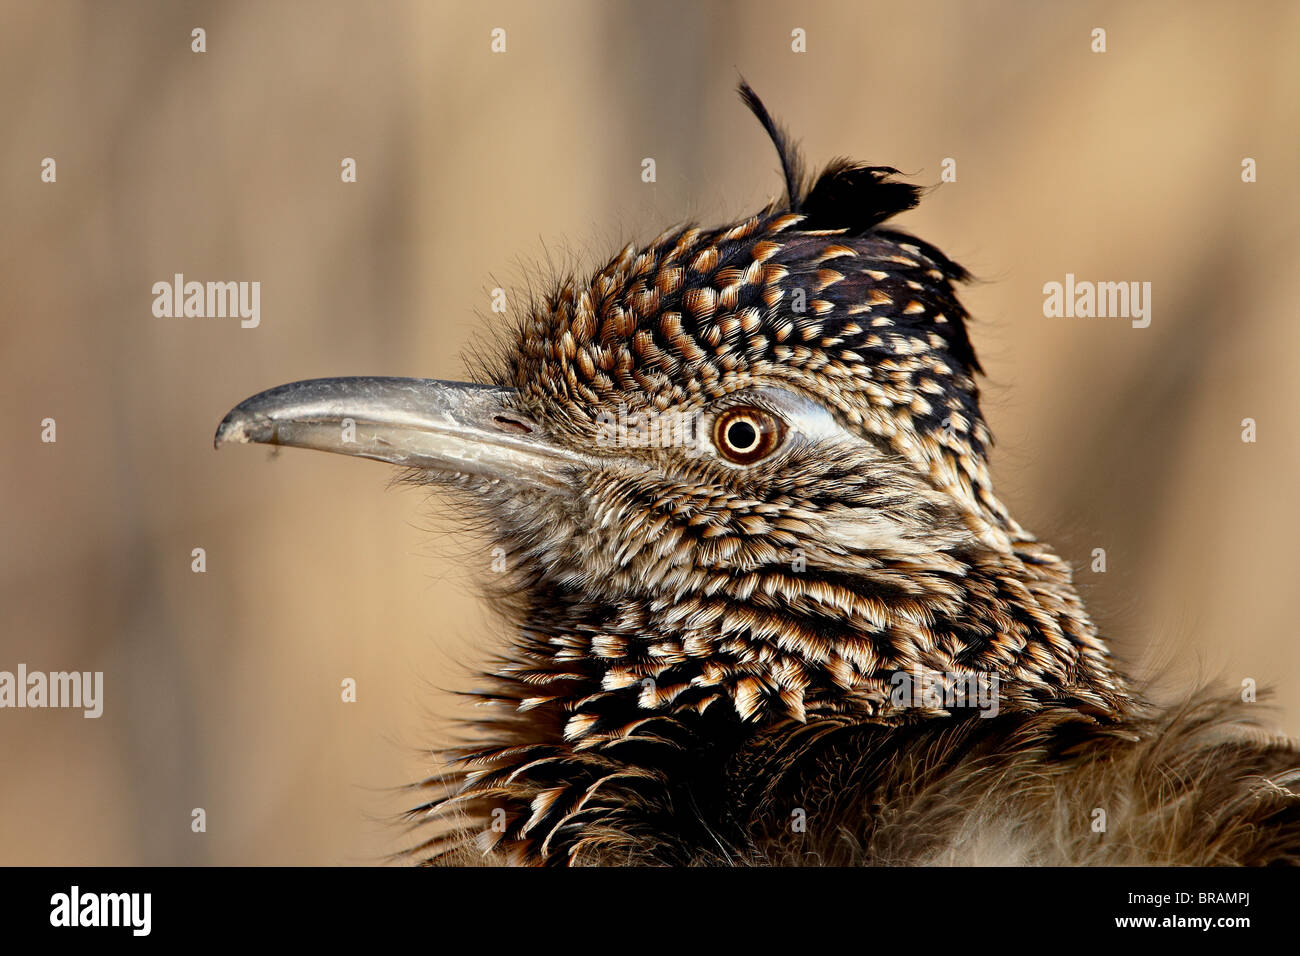 Greater Roadrunner (Geococcyx californianus), Bosque Del Apache National Wildlife Refuge, New Mexico, United States - Stock Image